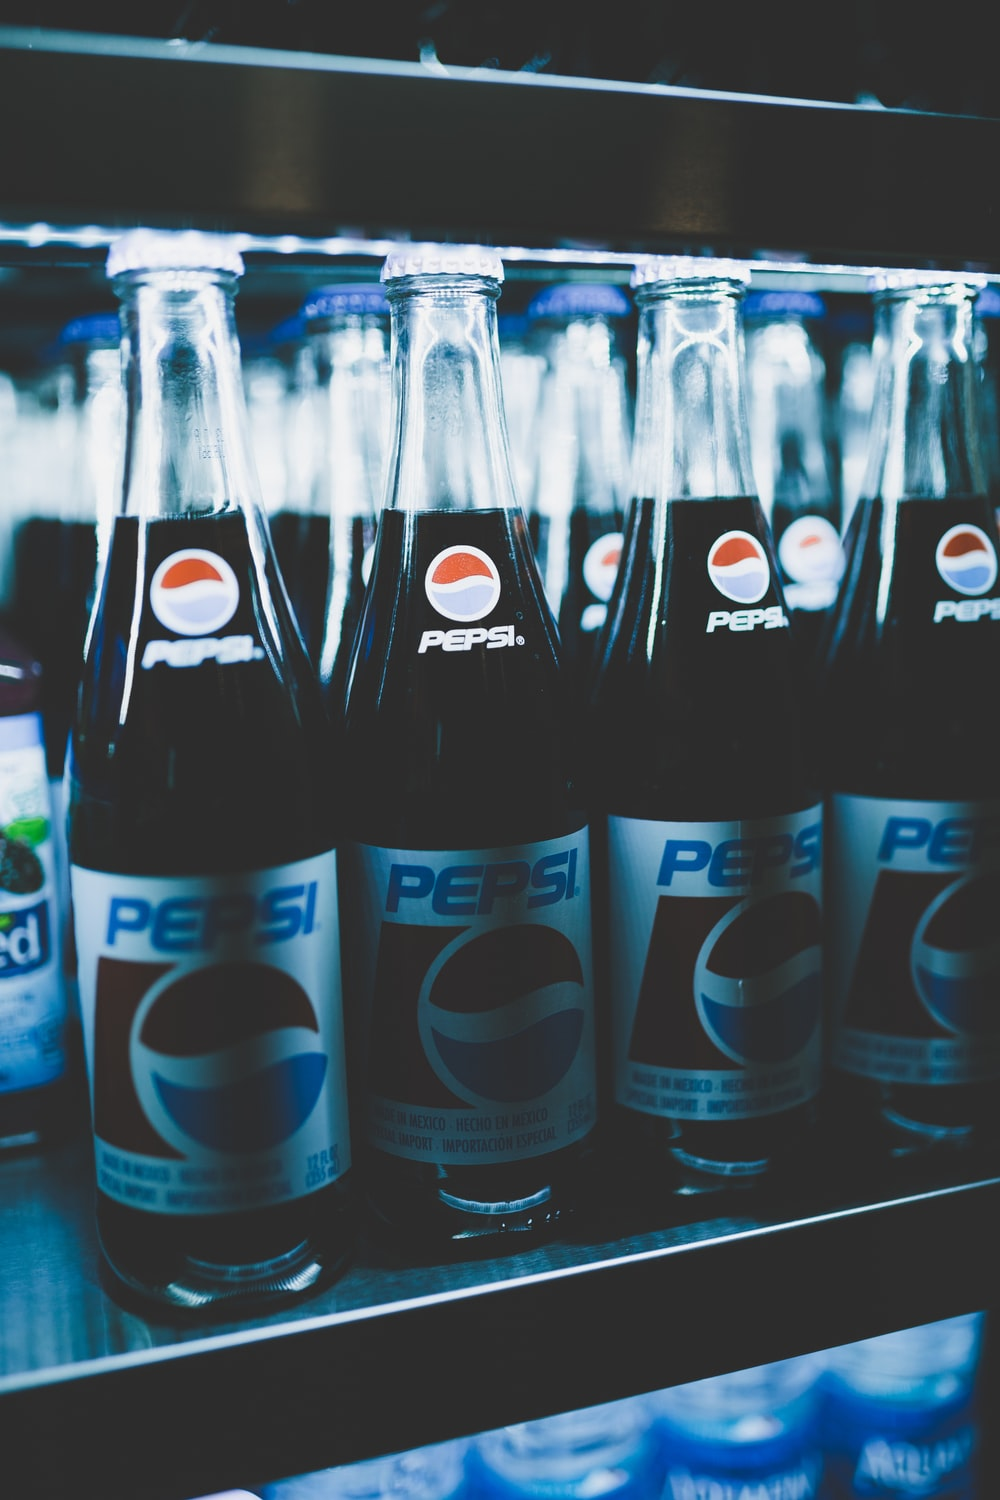 Pepsi bottles on cooler